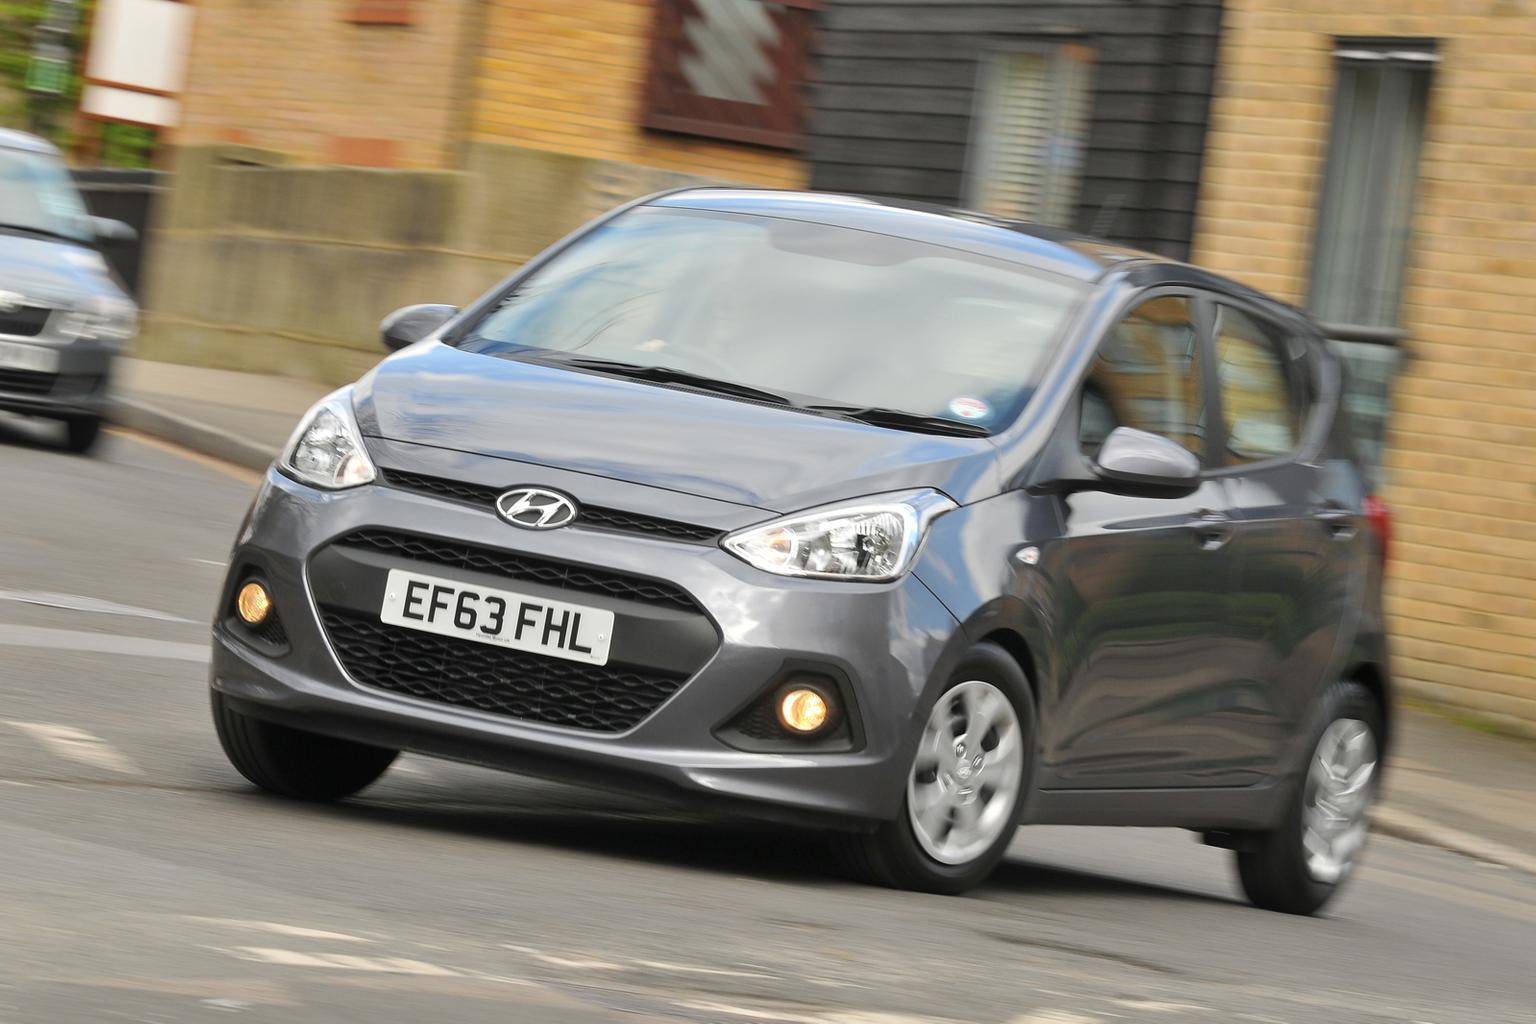 Hyundai i10 joins the What Car? test fleet